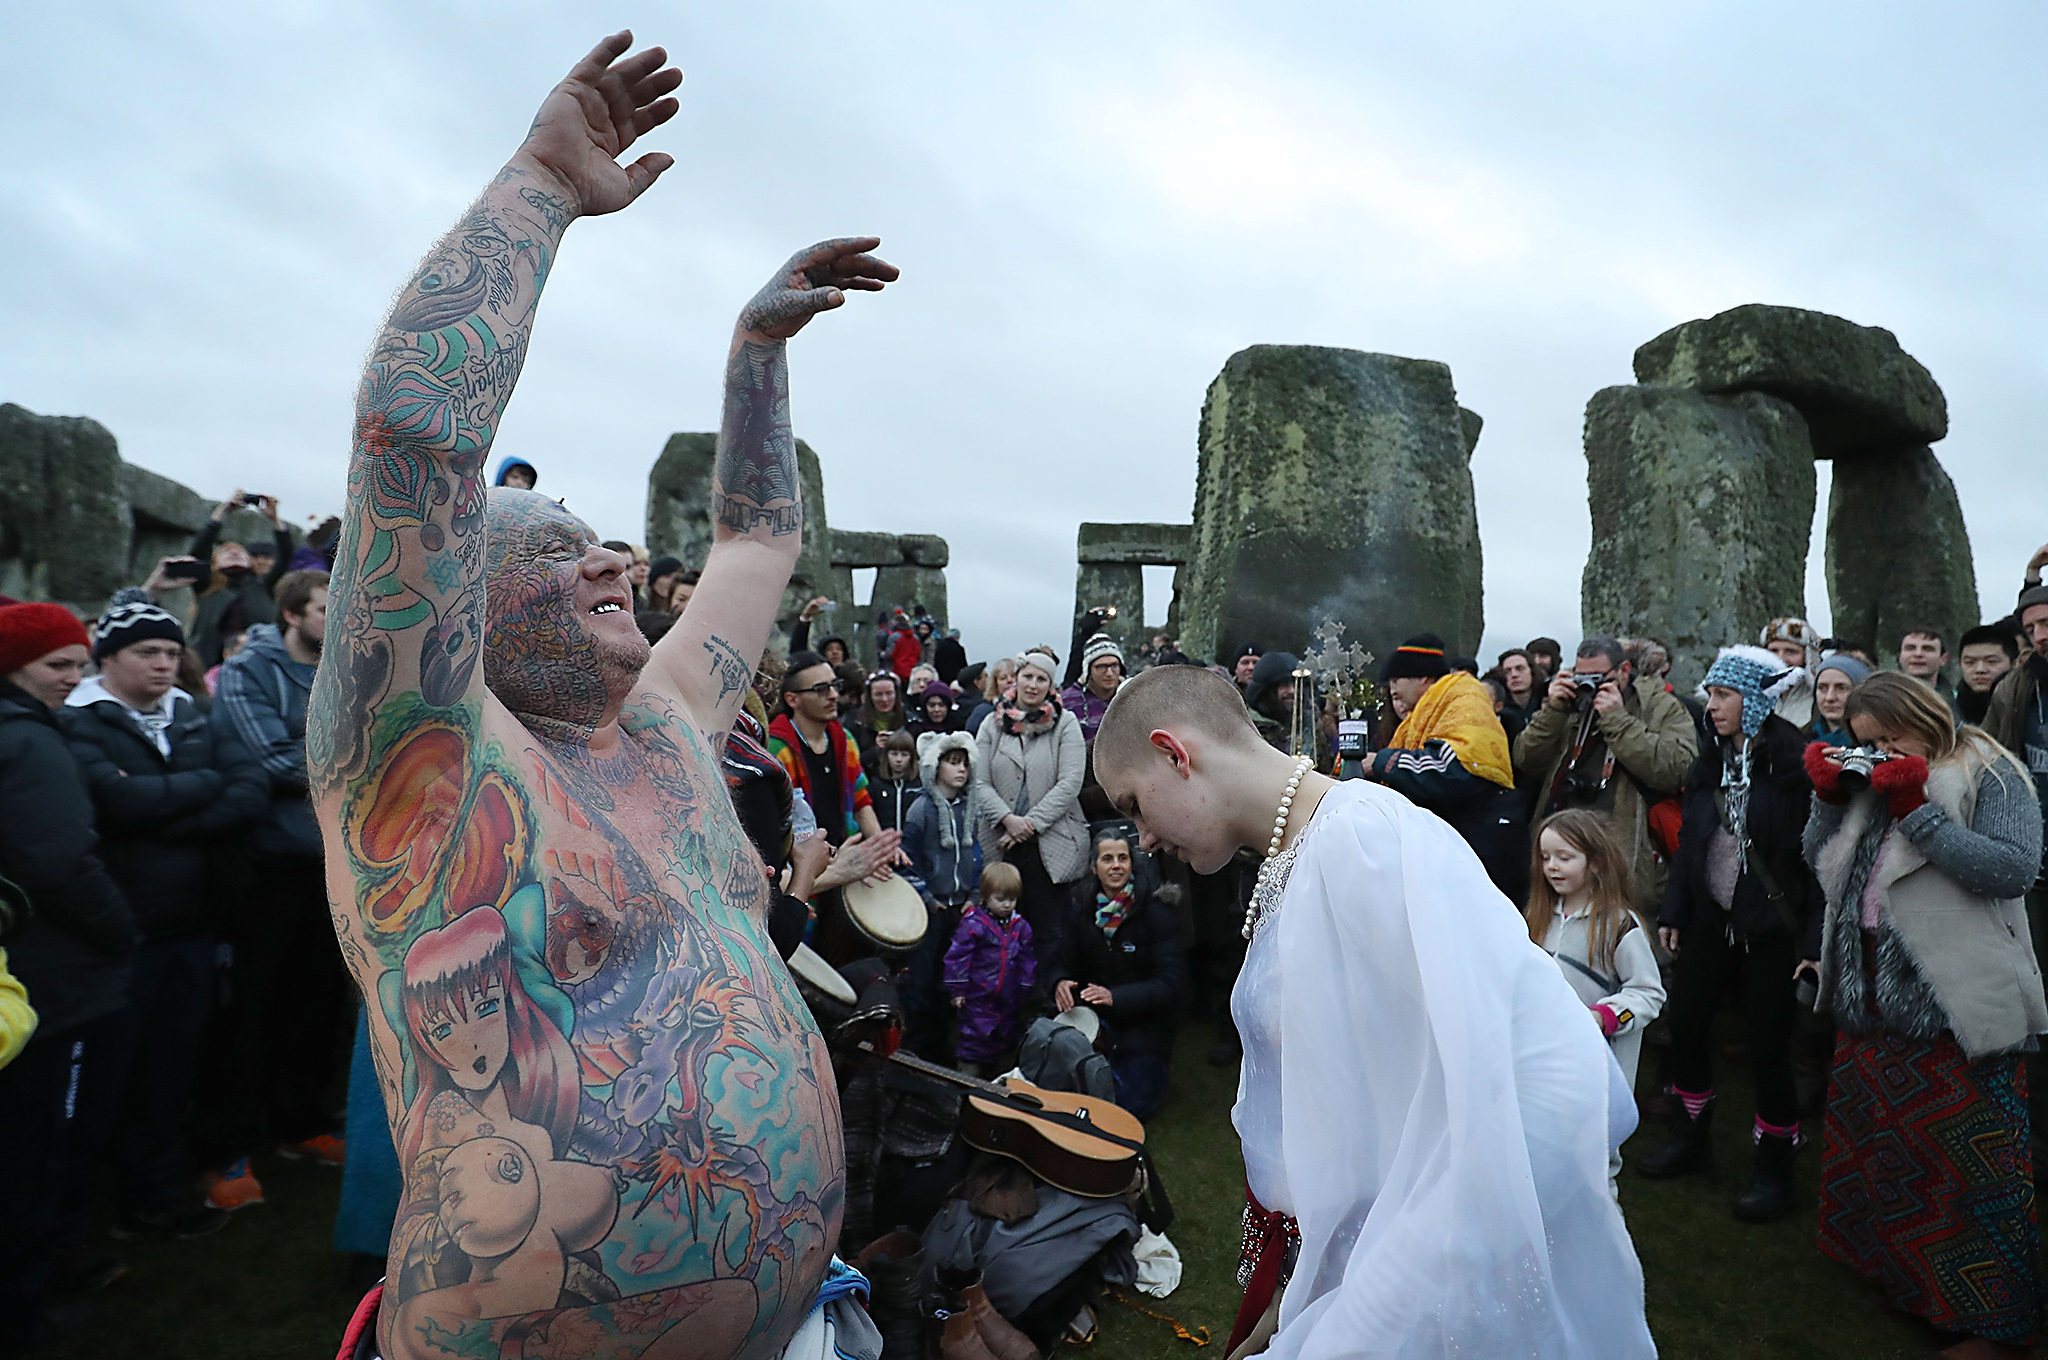 Druids, pagans and revellers gather in the centre of Stonehenge as they take part in a winter solstice ceremony at the ancient neolithic monument of Stonehenge near Amesbury on December 21, 2016 in Wiltshire, England. Despite a forecast for cloud and rain, a large crowd gathered at the famous historic stone circle, a UNESCO listed ancient monument, to celebrate the sunrise closest to the Winter Solstice, the shortest day of the year. The event is claimed to be more important in the pagan calendar than the summer solstice, because it marks the 're-birth' of the Sun for the New Year.  (Photo by Matt Cardy/Getty Images)